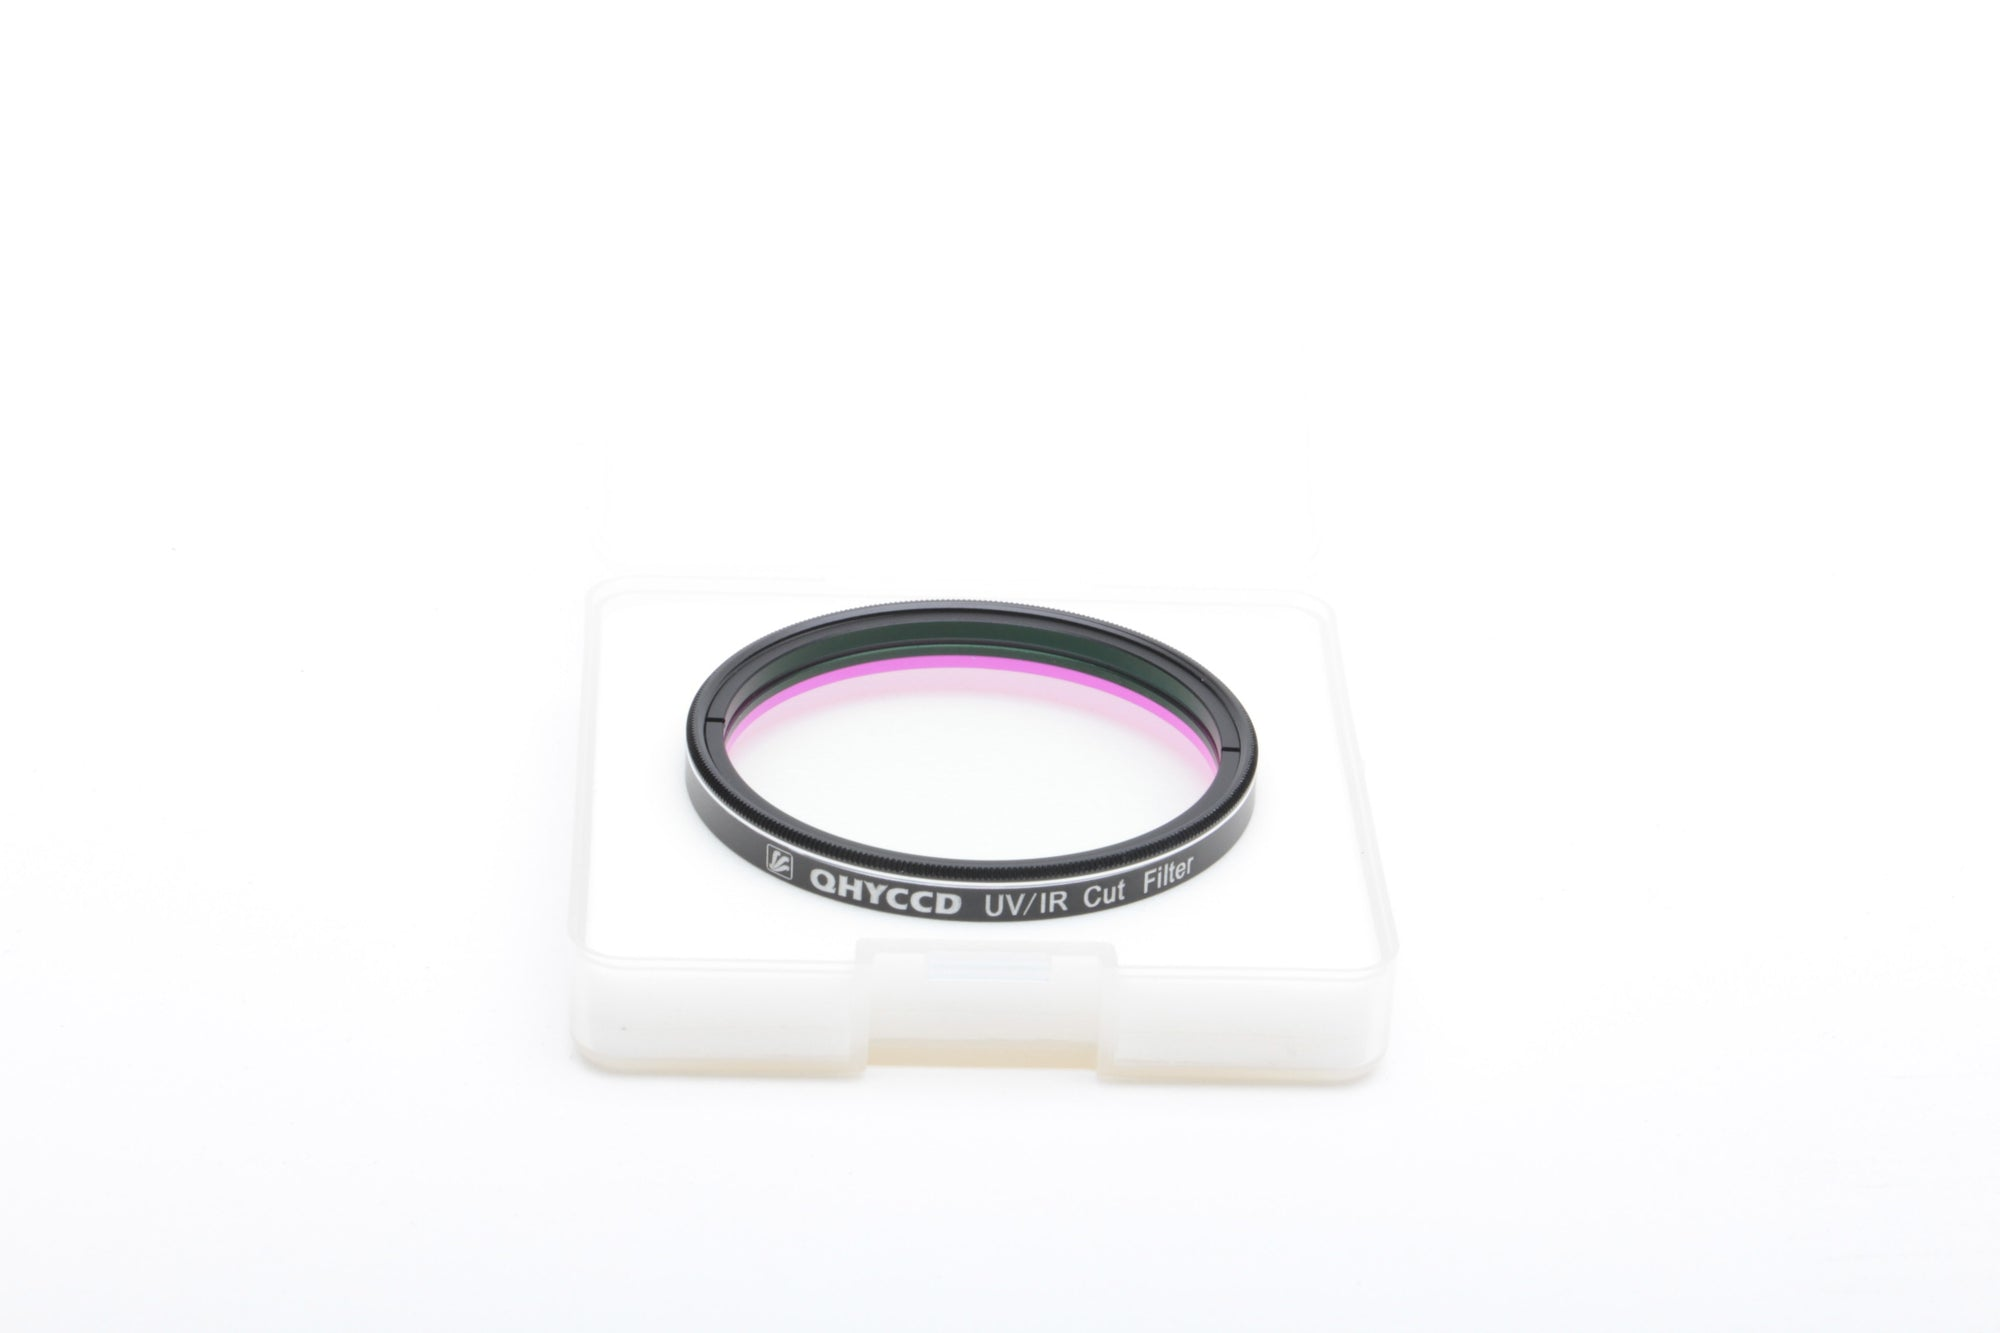 Used QHYCCD UV/IR Filter